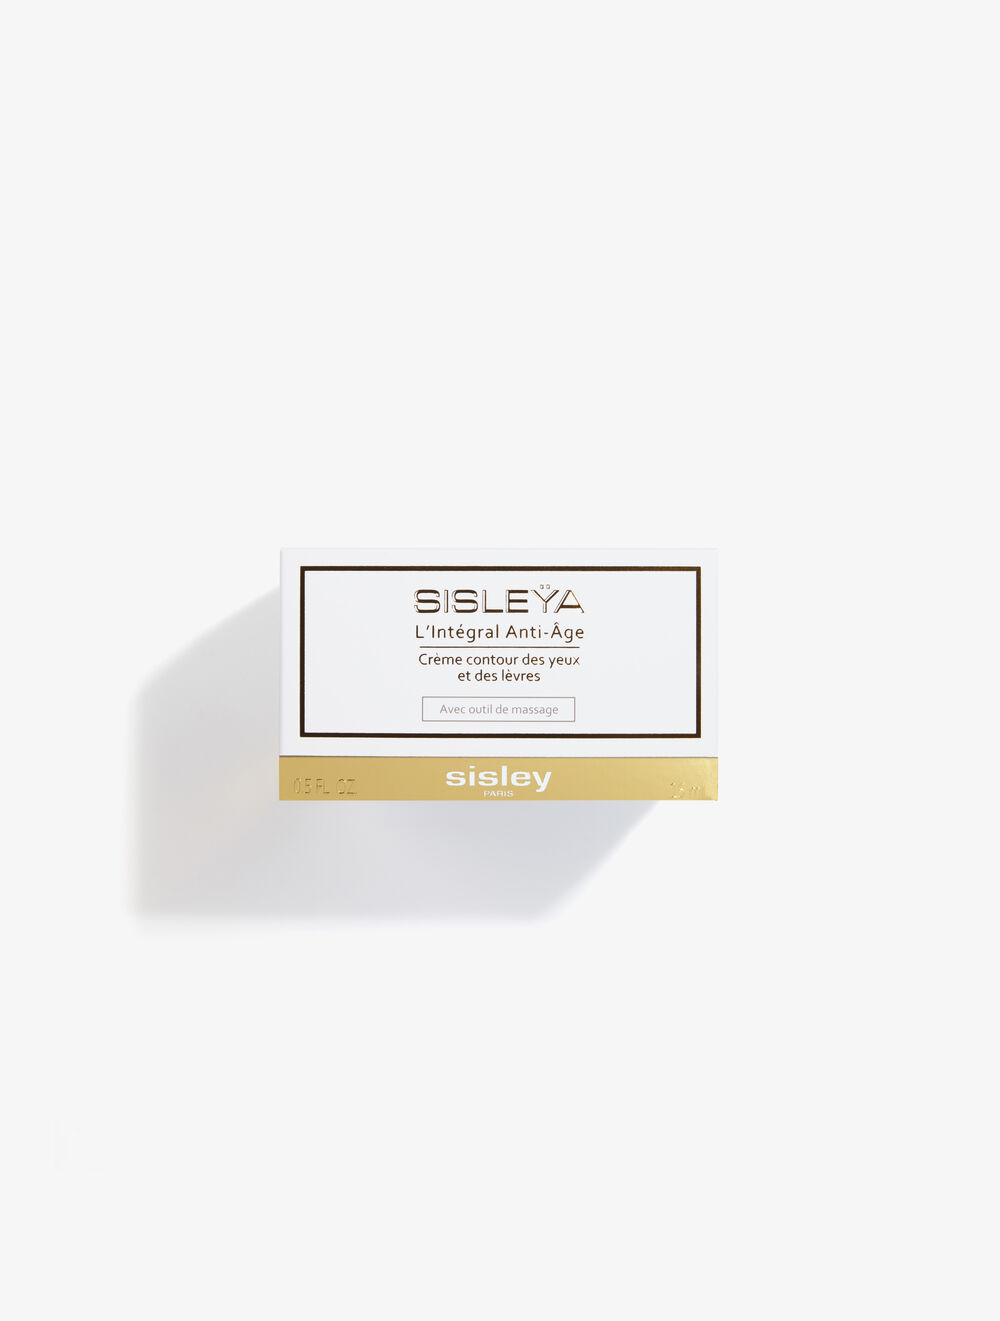 Sisleÿa L'Integral Anti-Age Eye and Lip Contour Cream